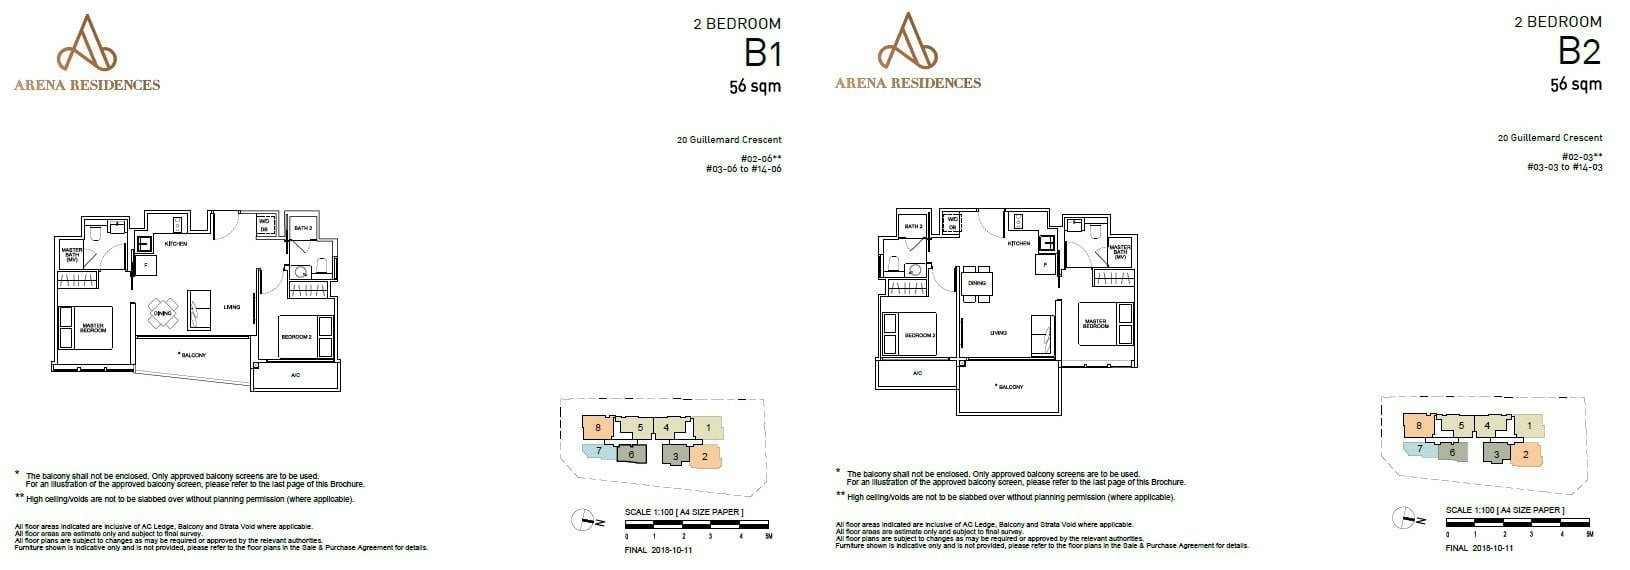 Arena Residences Guillemard - Floor Plan 2